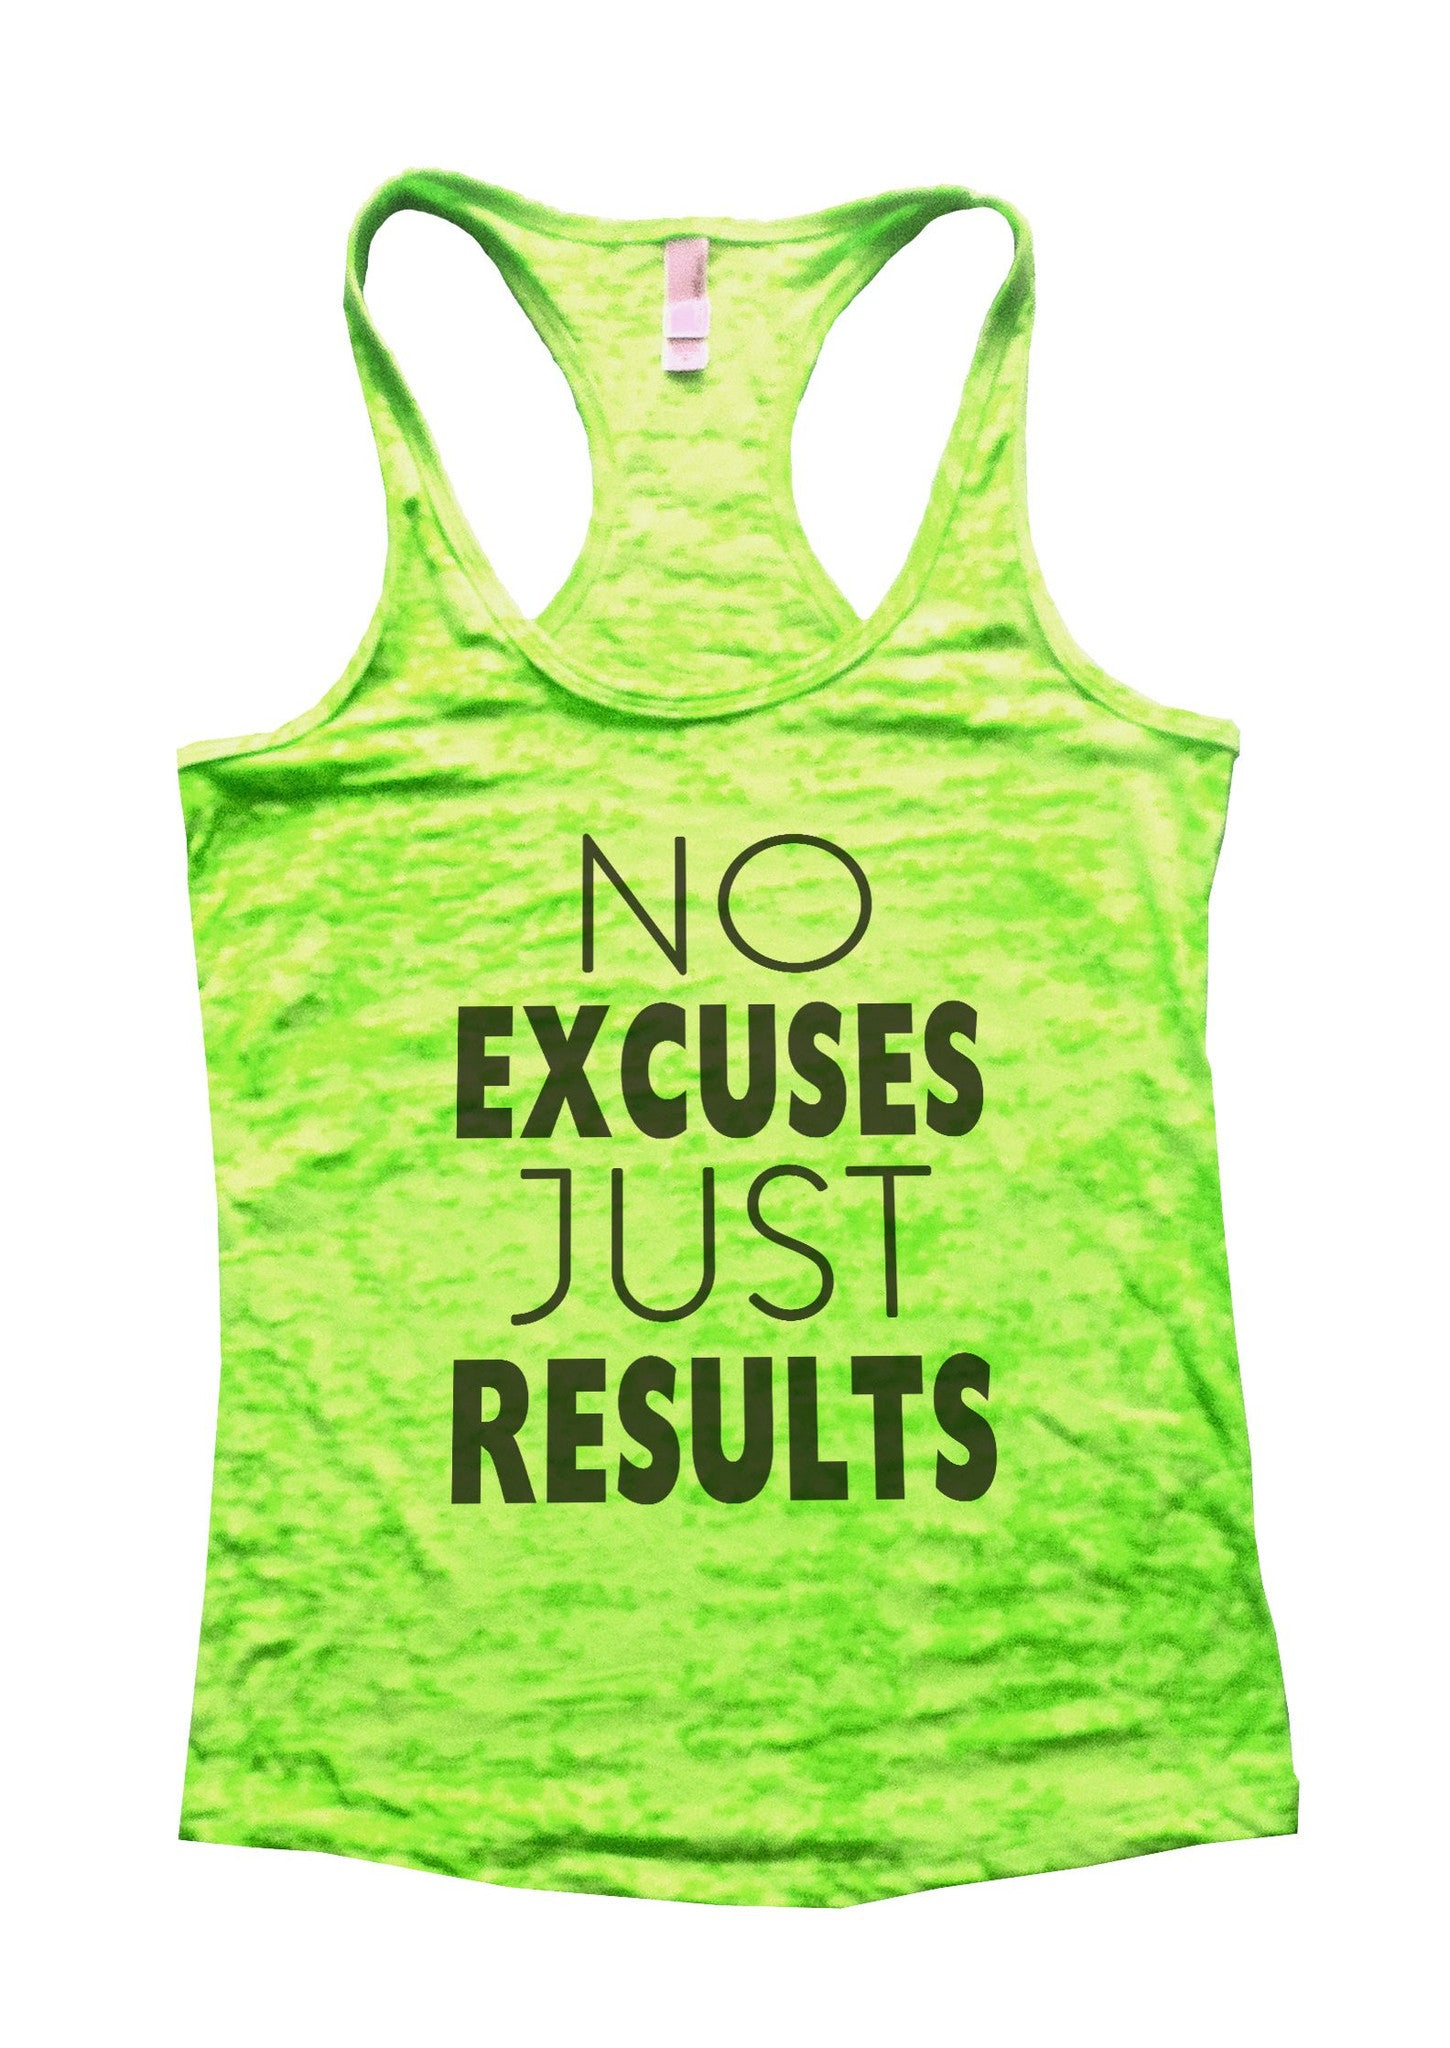 No Excuses Just Results Burnout Tank Top By BurnoutTankTops.com - 747 - Funny Shirts Tank Tops Burnouts and Triblends  - 3